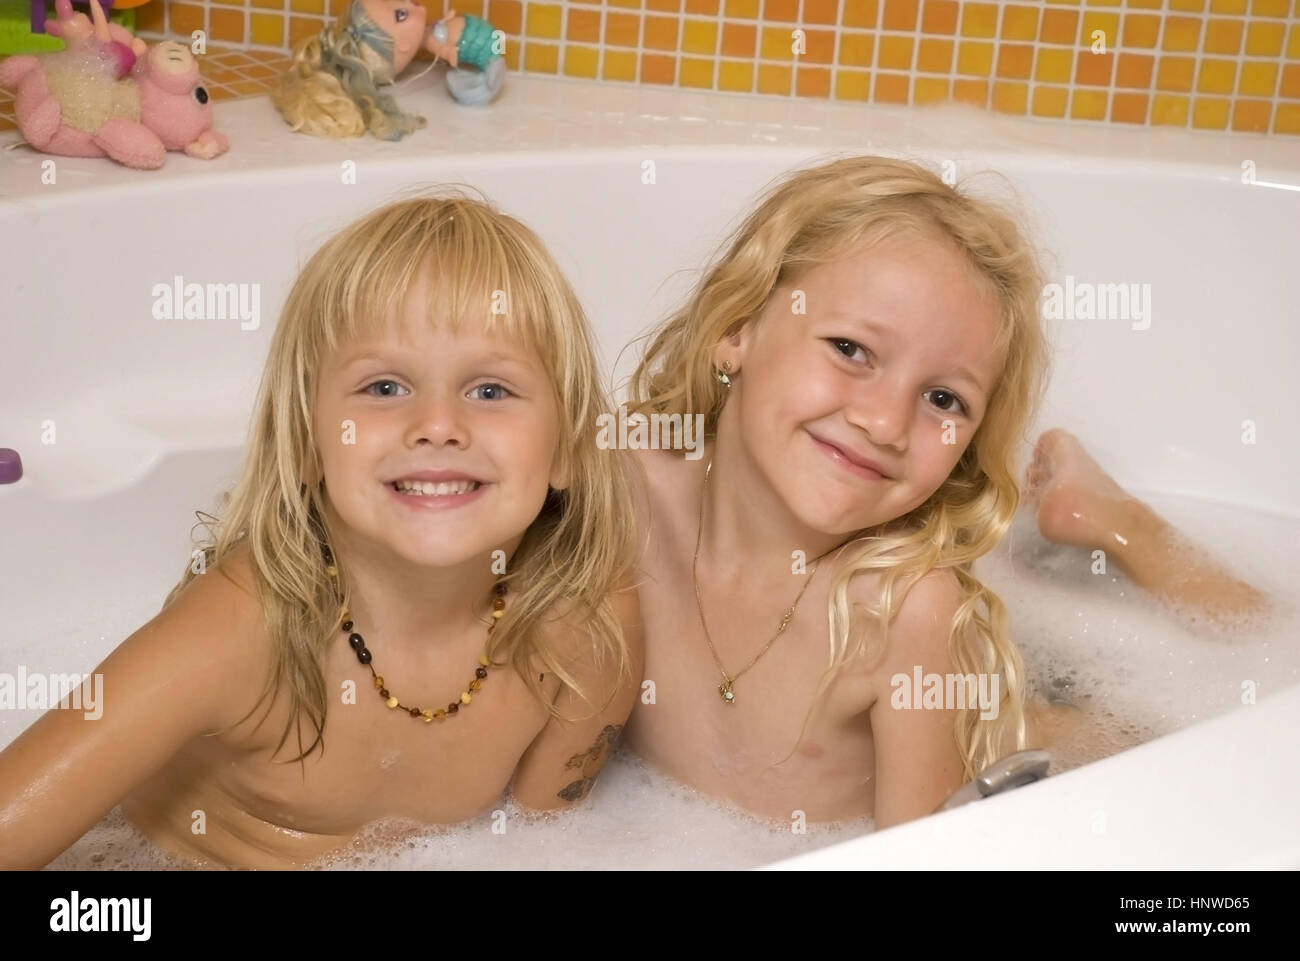 Trying find naked girl taking a bath big